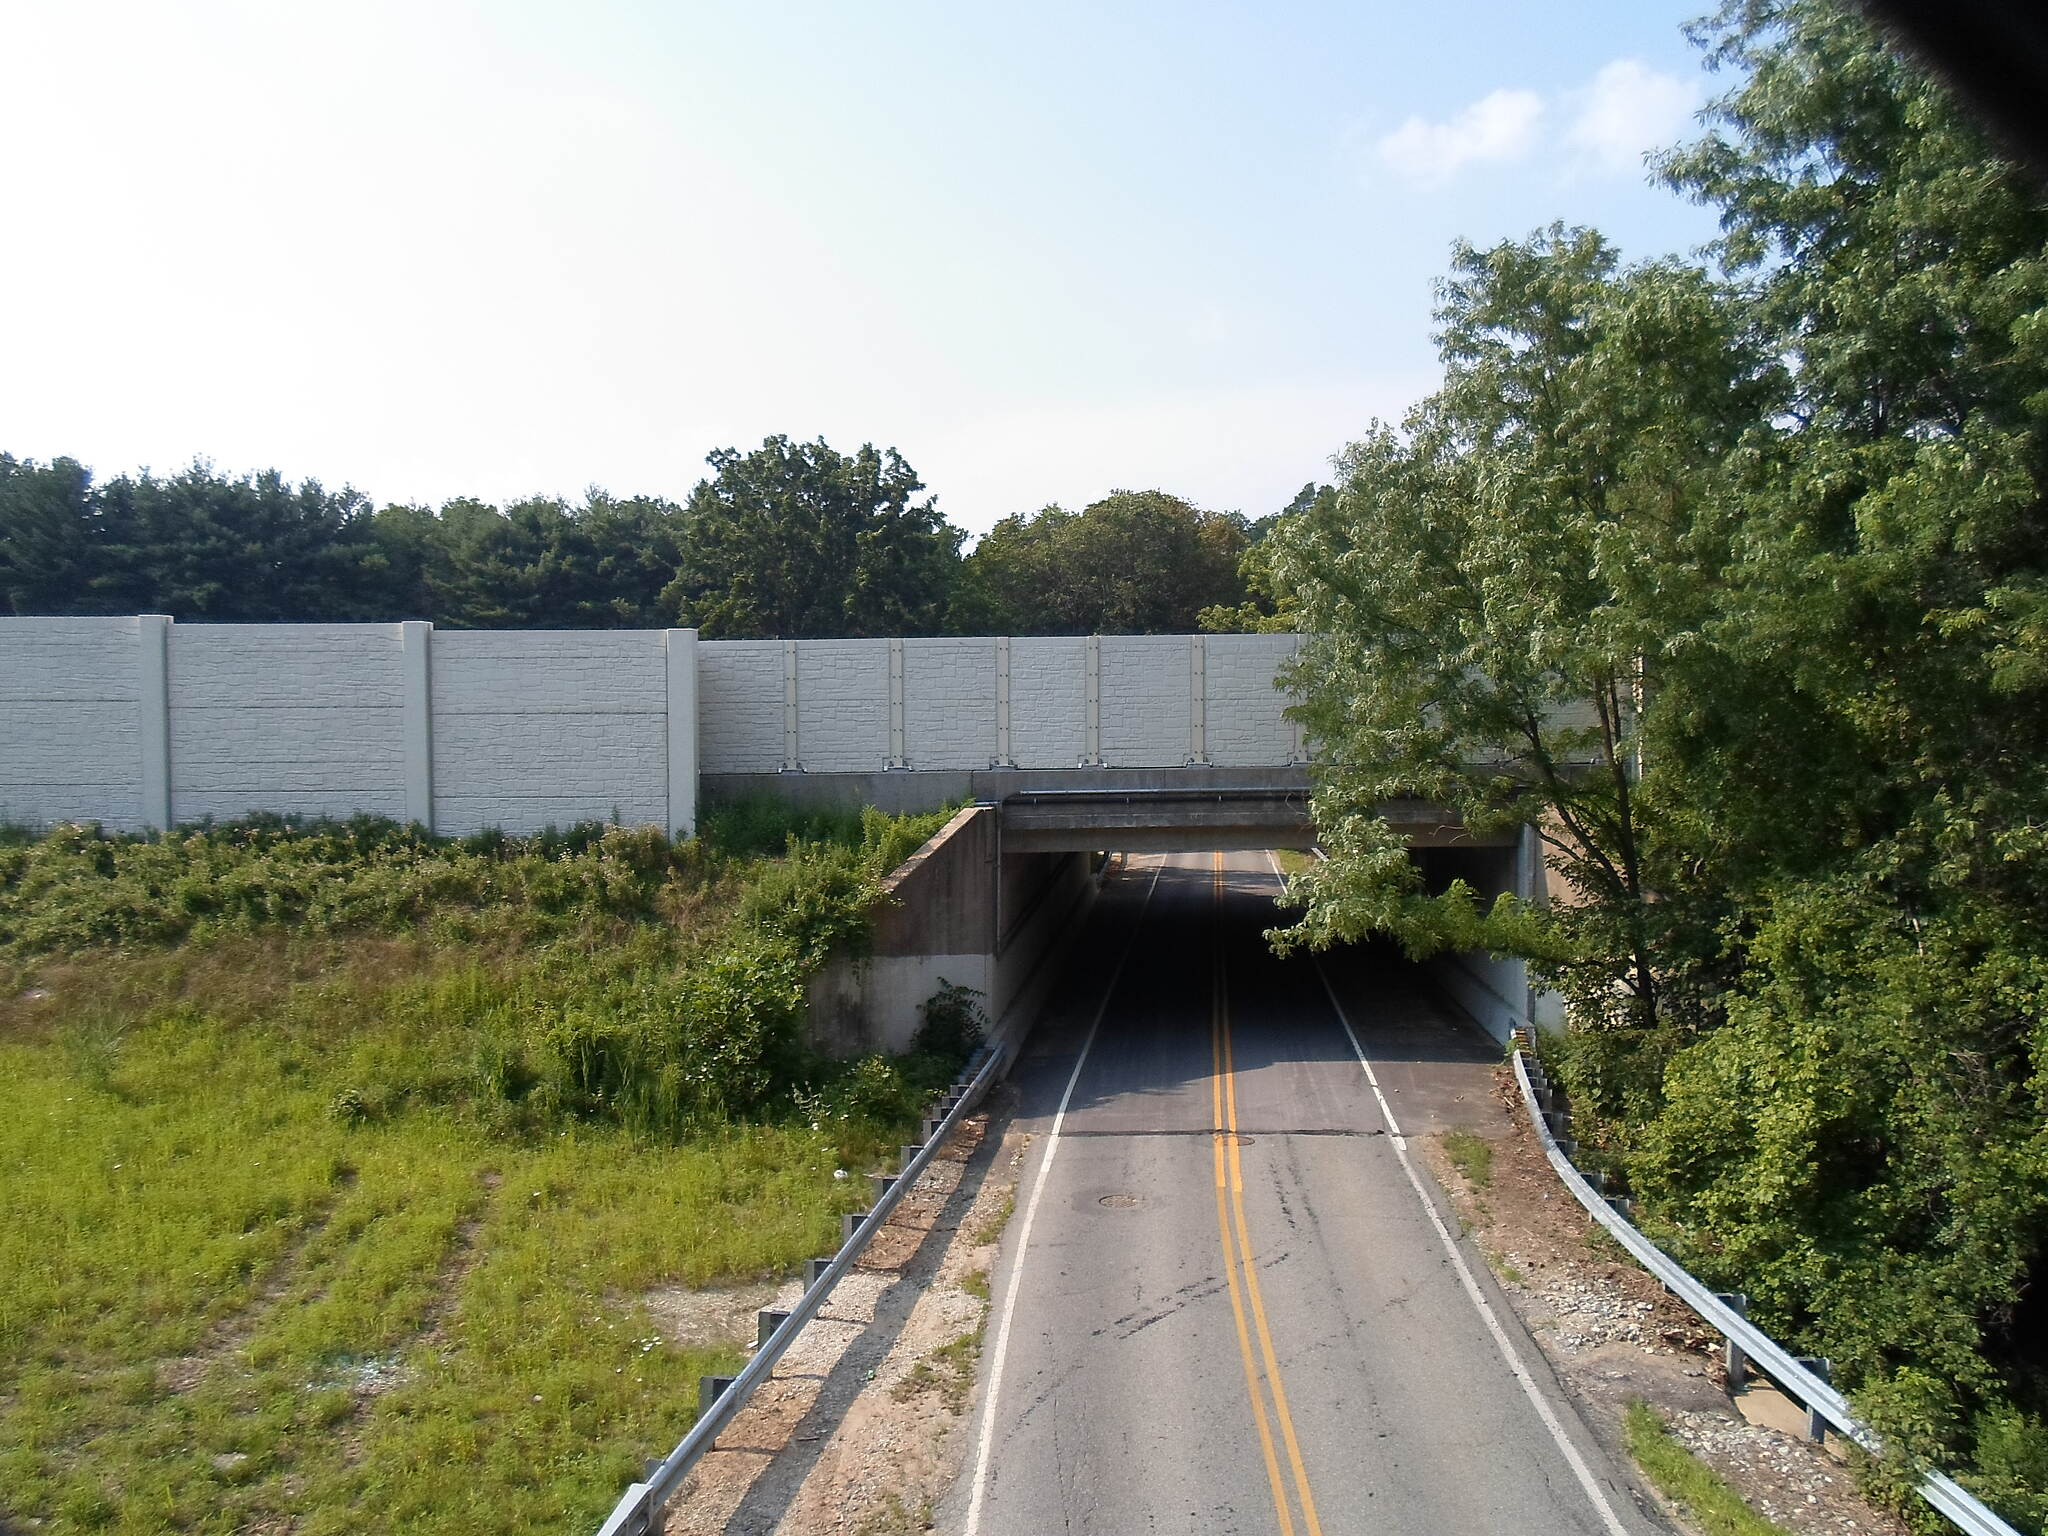 Chester Valley Trail Chester Valley Trail The Route 202 bridge over Valley Road can be seen immediately north of the trail bridge, which replaces a long since demolished railroad overpass. Taken July 2015.